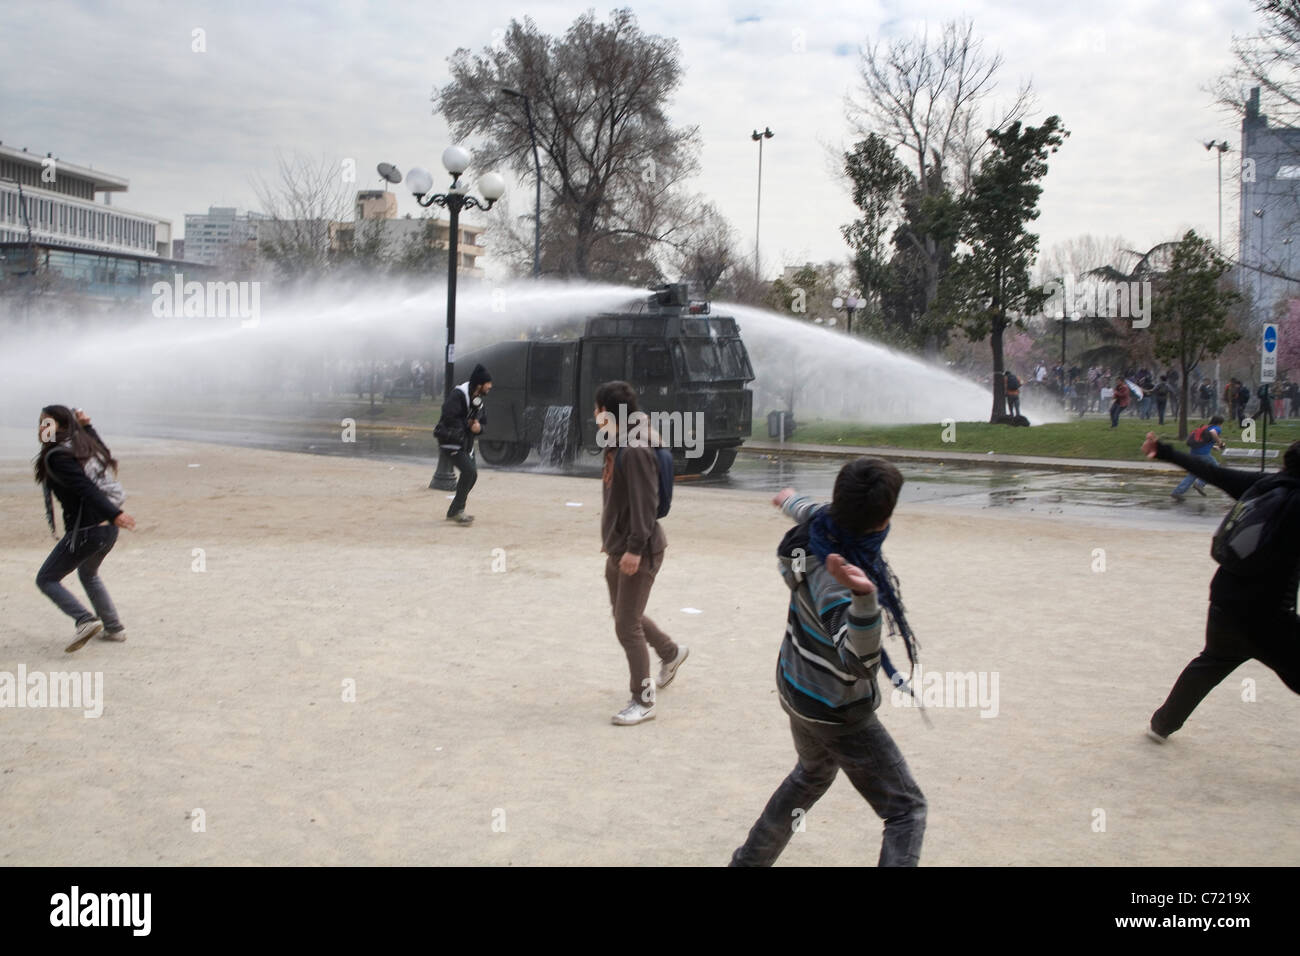 Water cannon in action during a student protest in Santiago de Chile - Stock Image